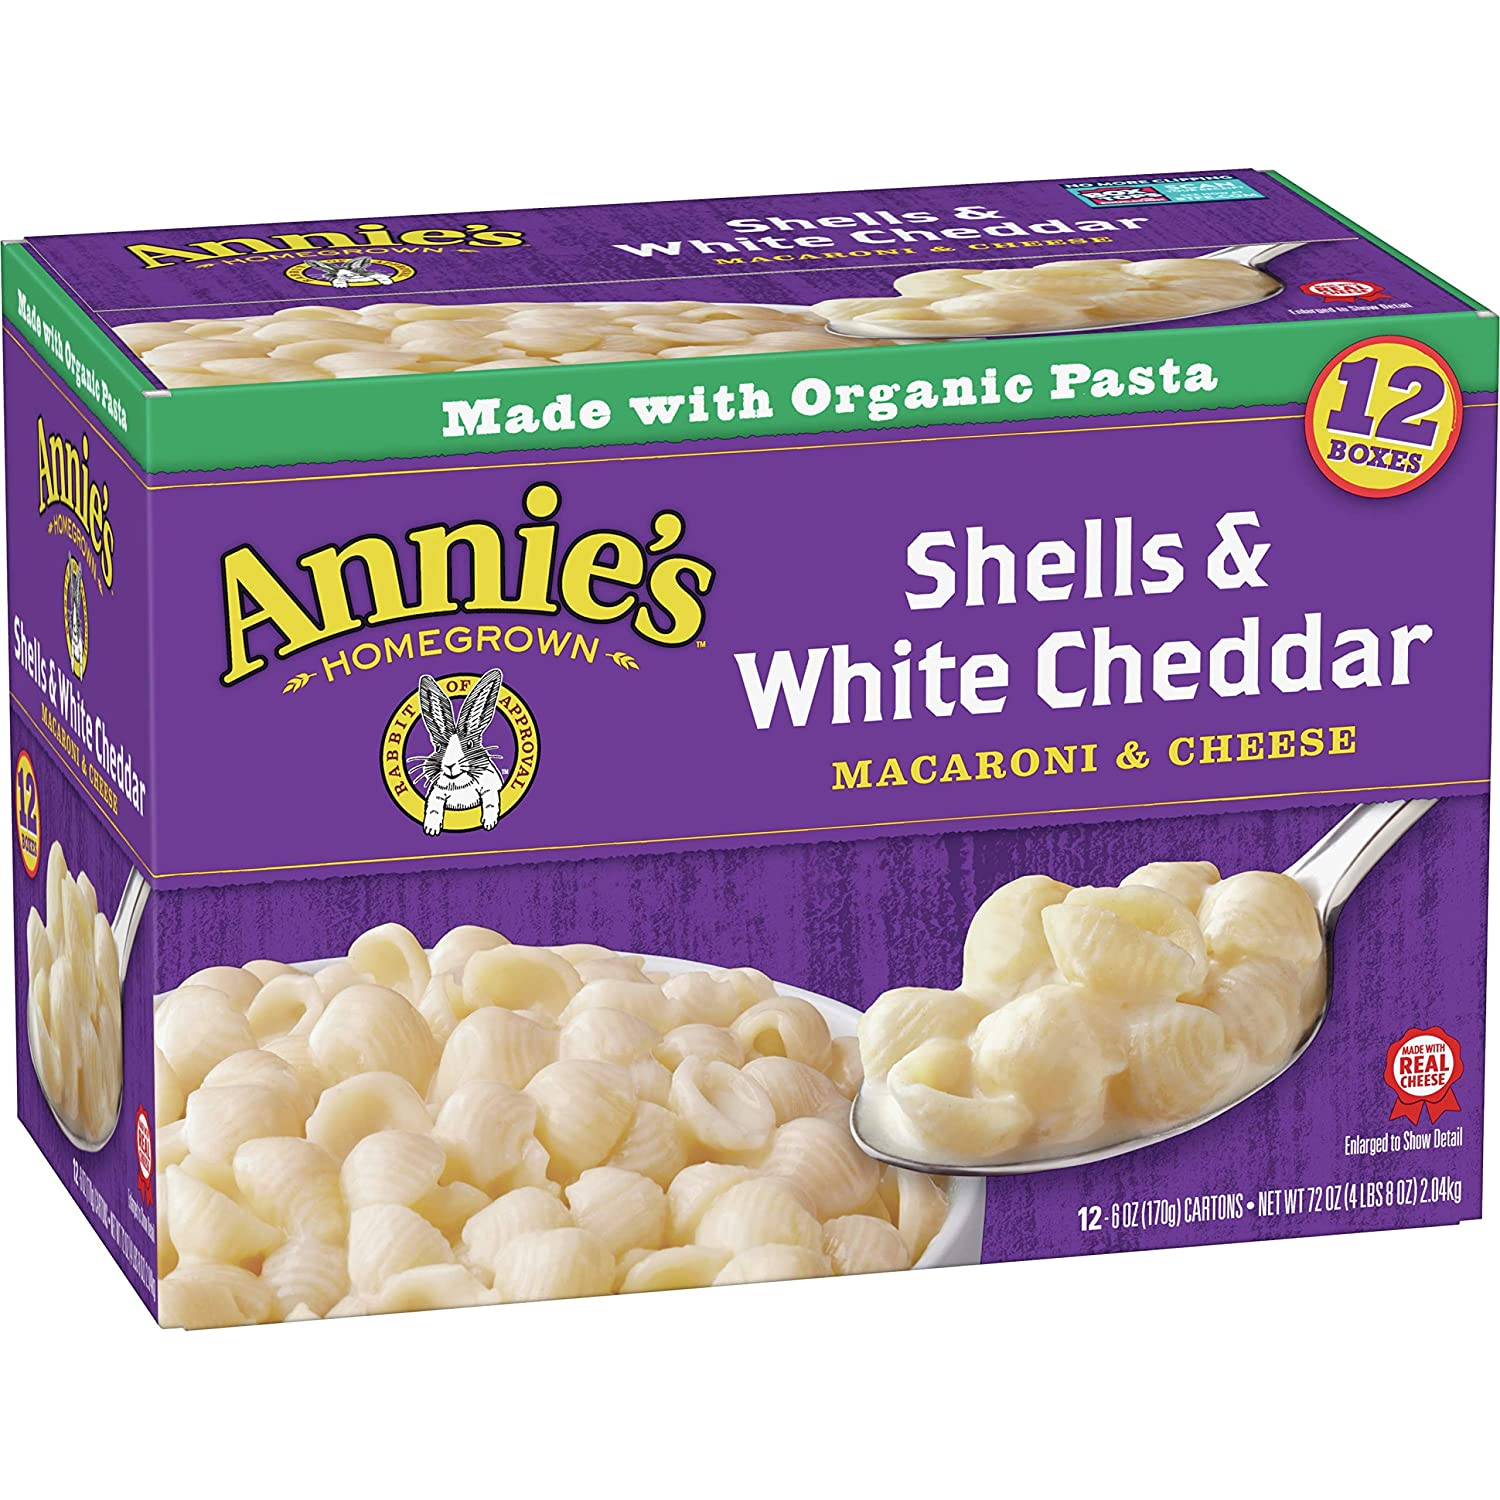 Annie's Homegrown Special price Shells and White pk. oz. 12 Cheddar Max 67% OFF 6